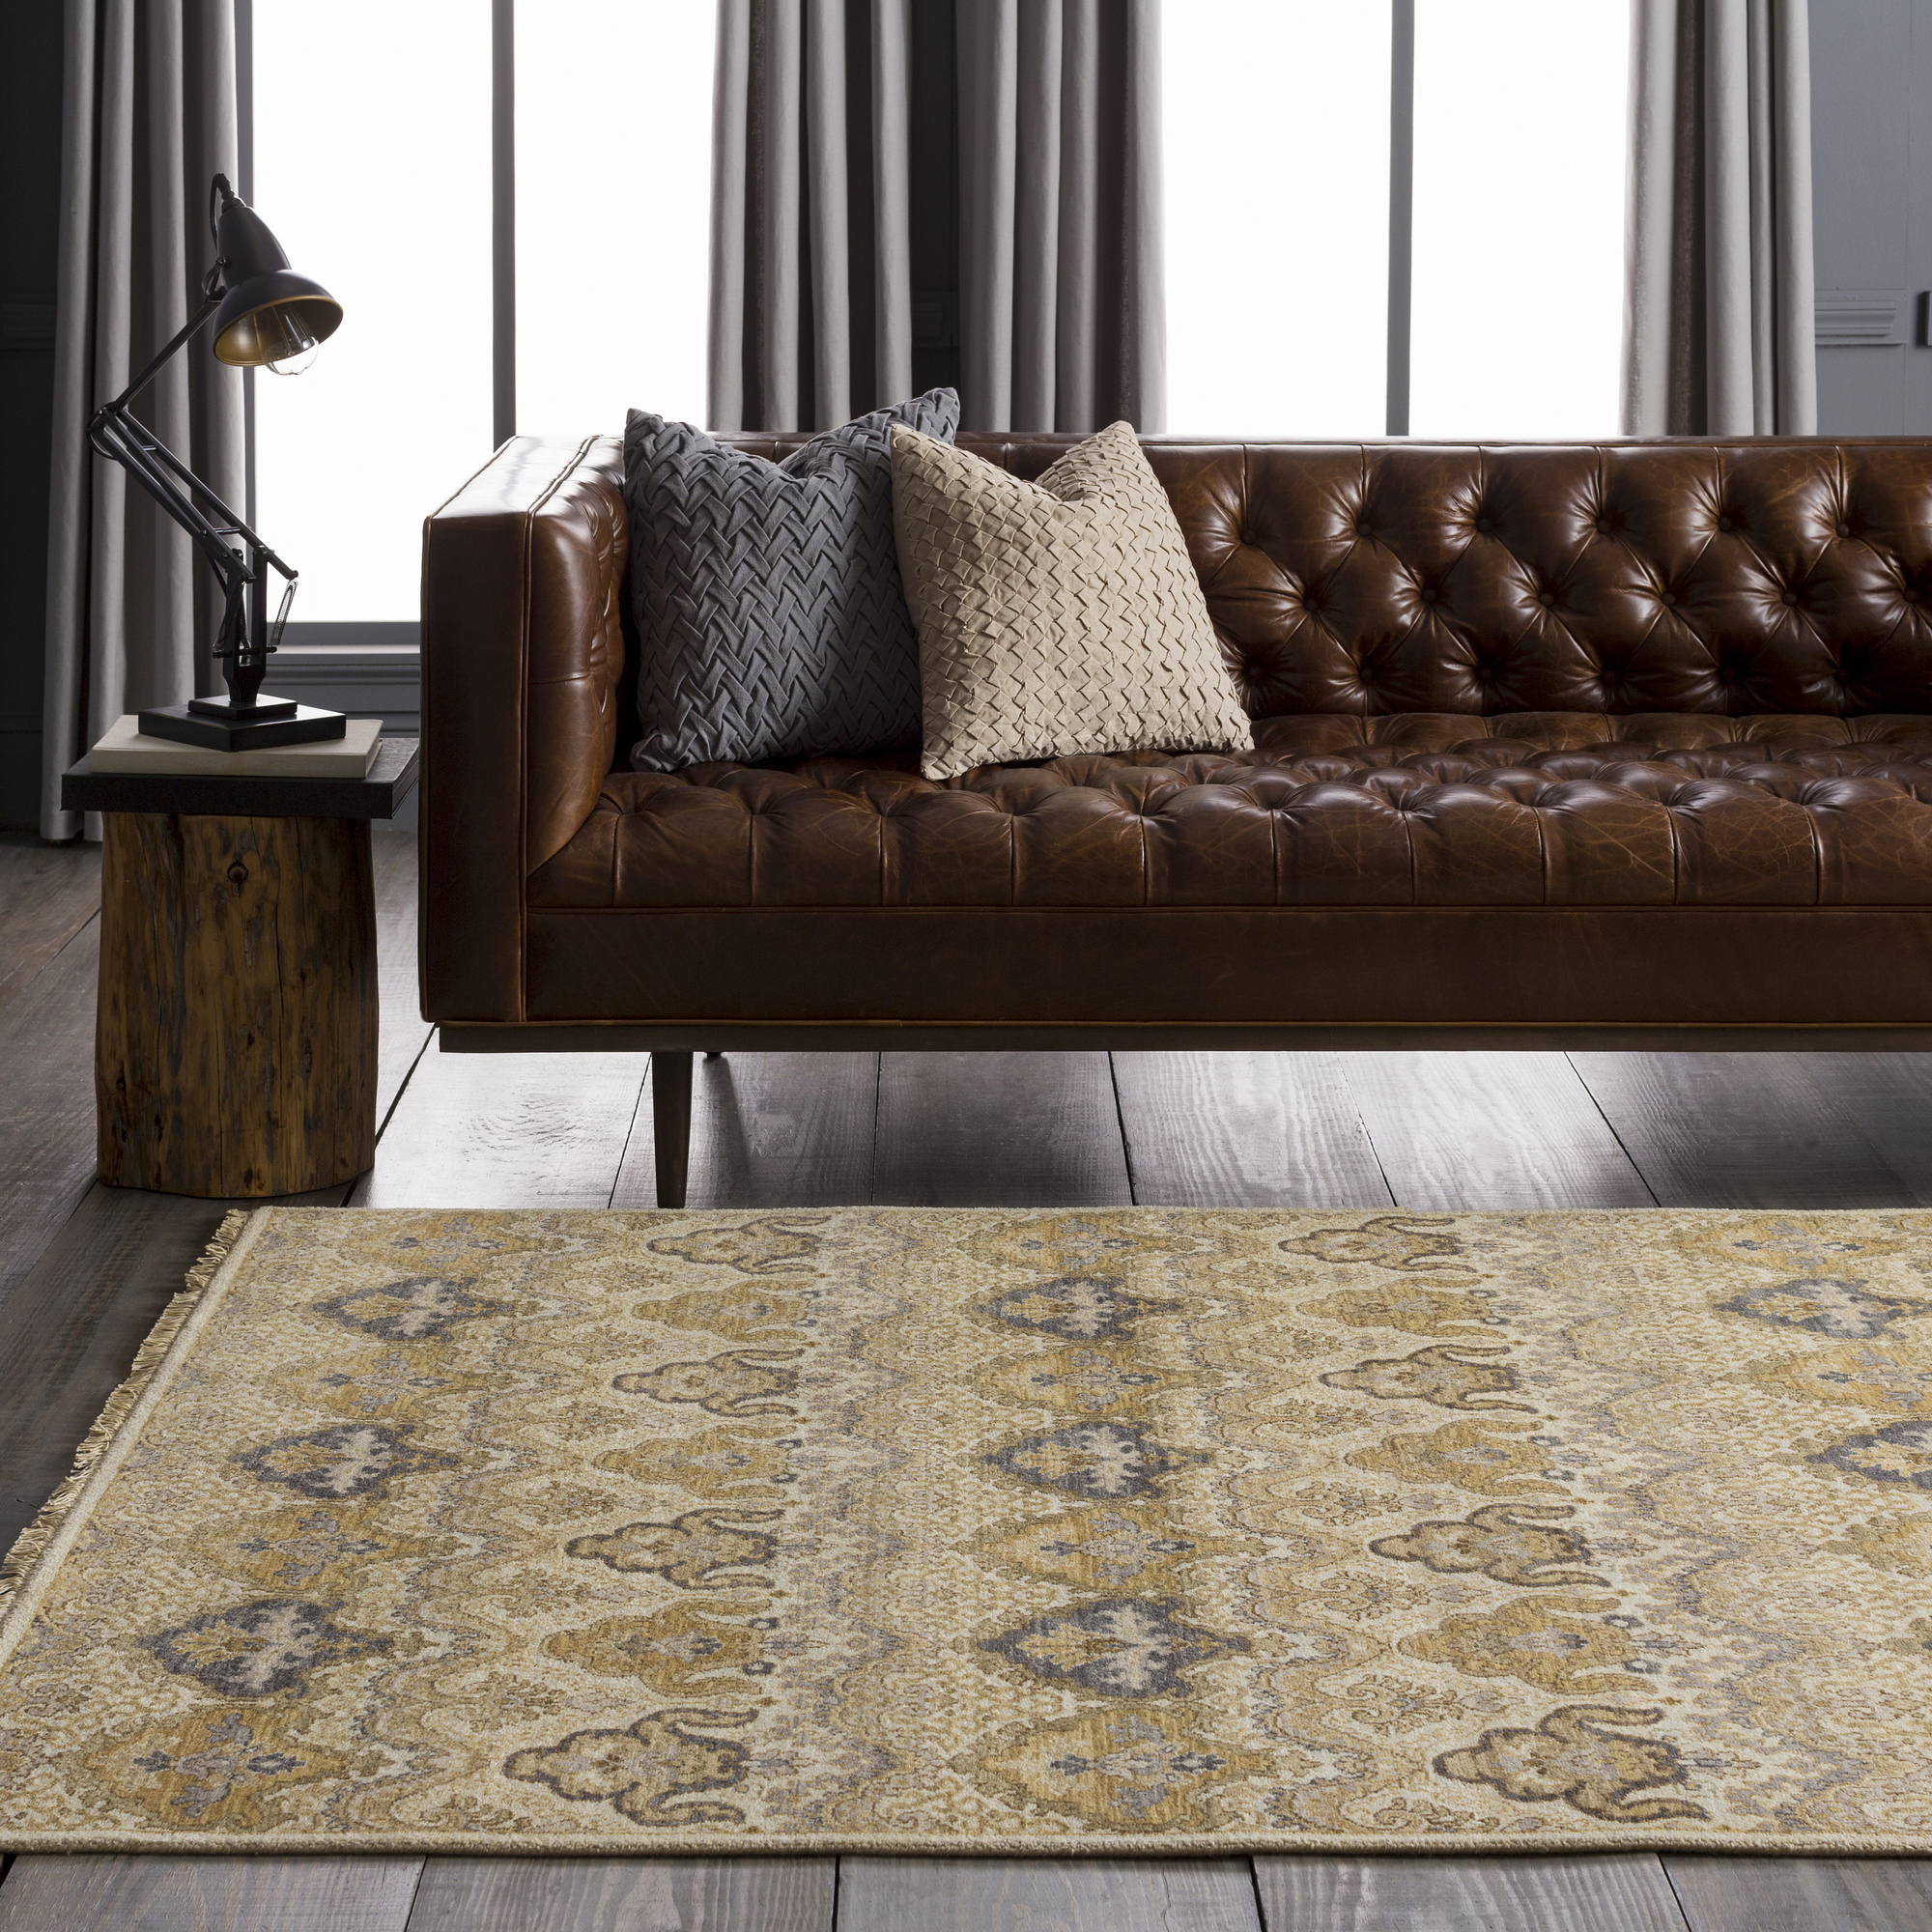 Art of Knot Irene 9' x 13' Rectangular Area Rug